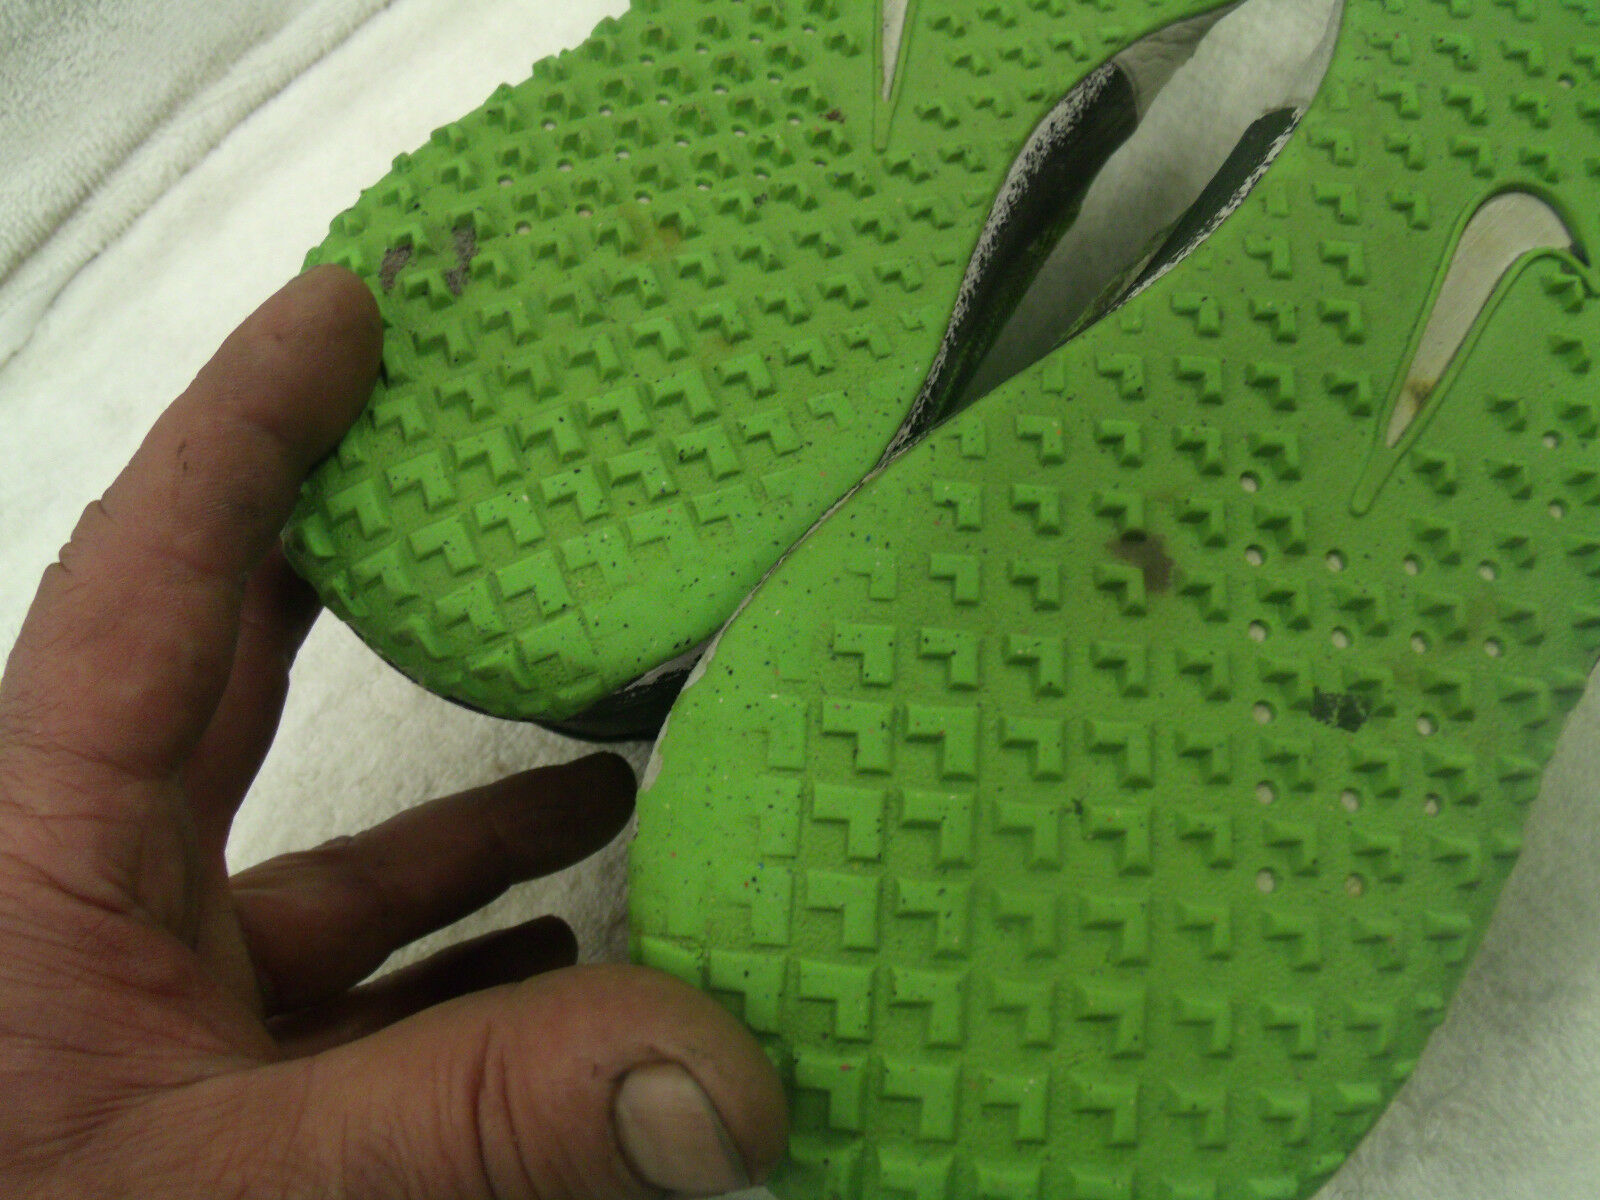 Nike ZOOM SPEED TR Men's Running or Training Shoes Men's TR Size 12 6db372